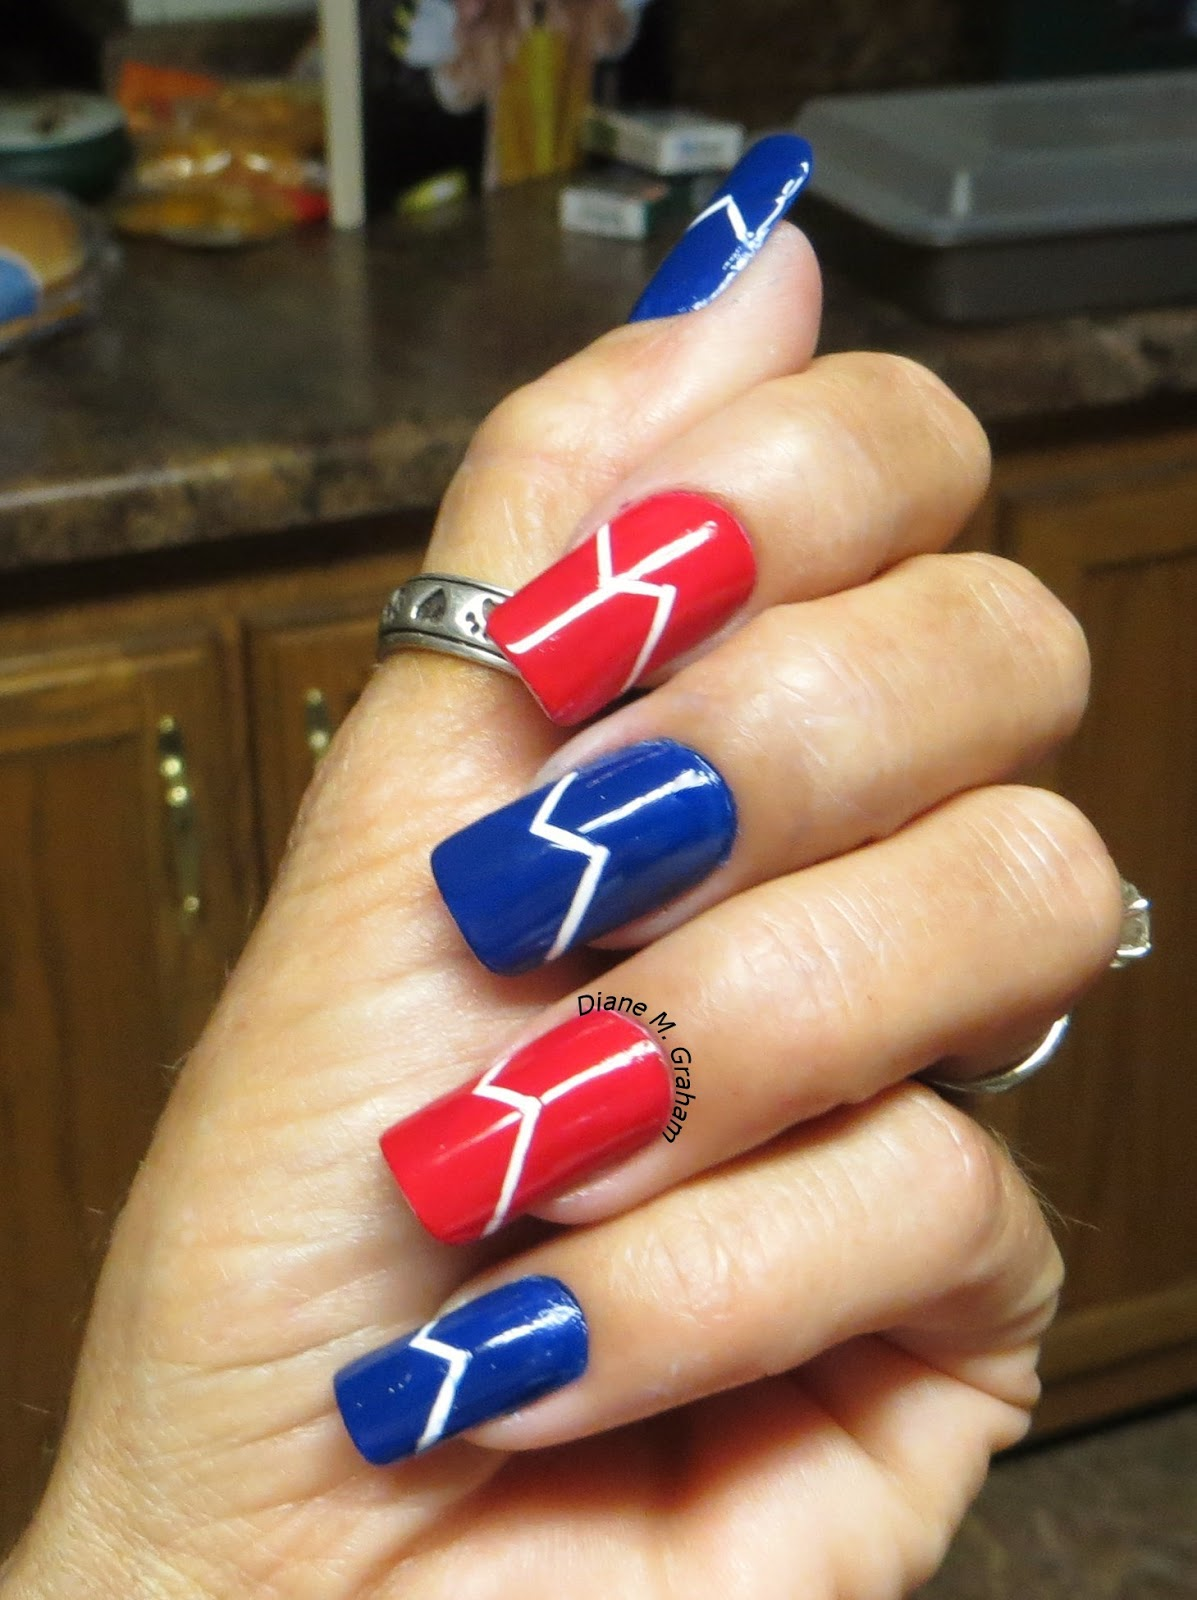 Custom nail solutions pretty patriotic 4th of july nail designs festive fireworks no fourth of july is complete without celebratory fireworks this independence day decorate your nails with festive fireworks to prinsesfo Gallery